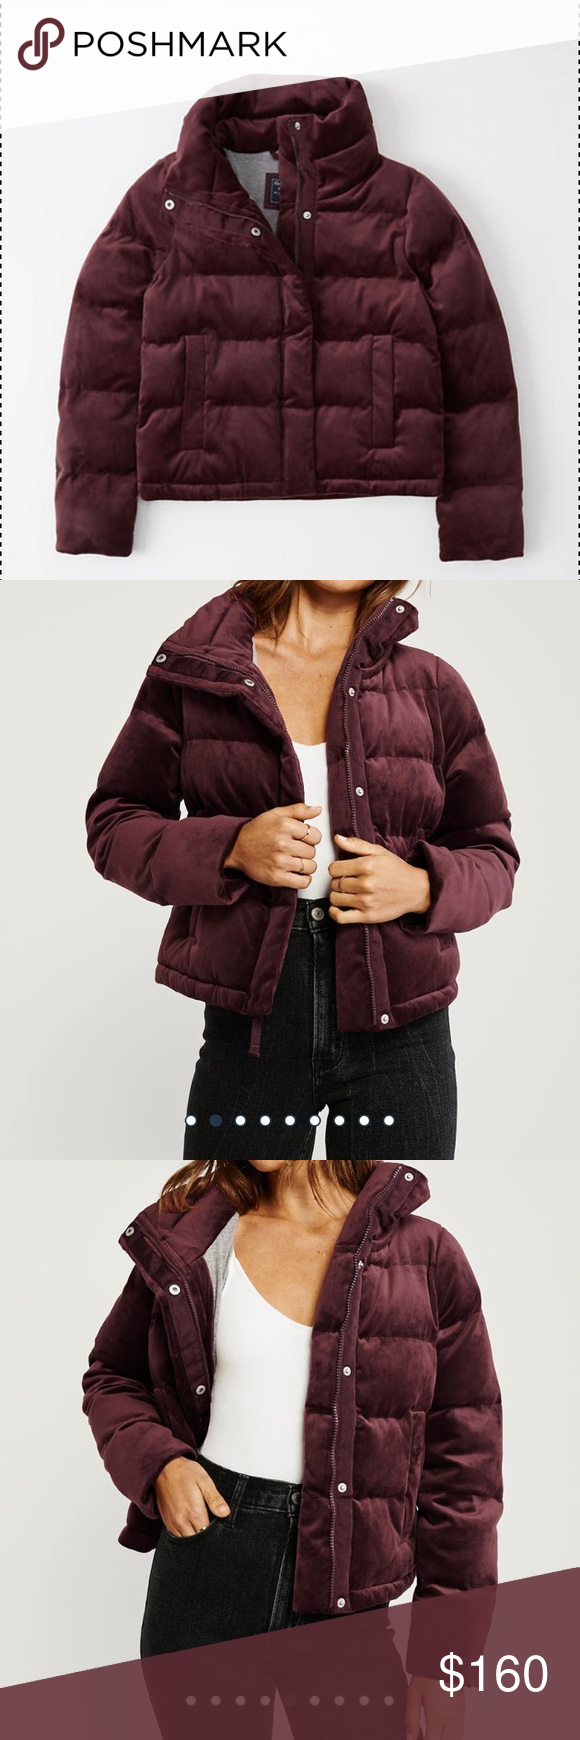 Abercrombie Fitch Velvet Puffer Sold Out Abercrombie Fitch Velvet Mini Puffer Jacket Abercrombie Fi Abercrombie And Fitch Jackets Clothes Design Fashion [ 1740 x 580 Pixel ]